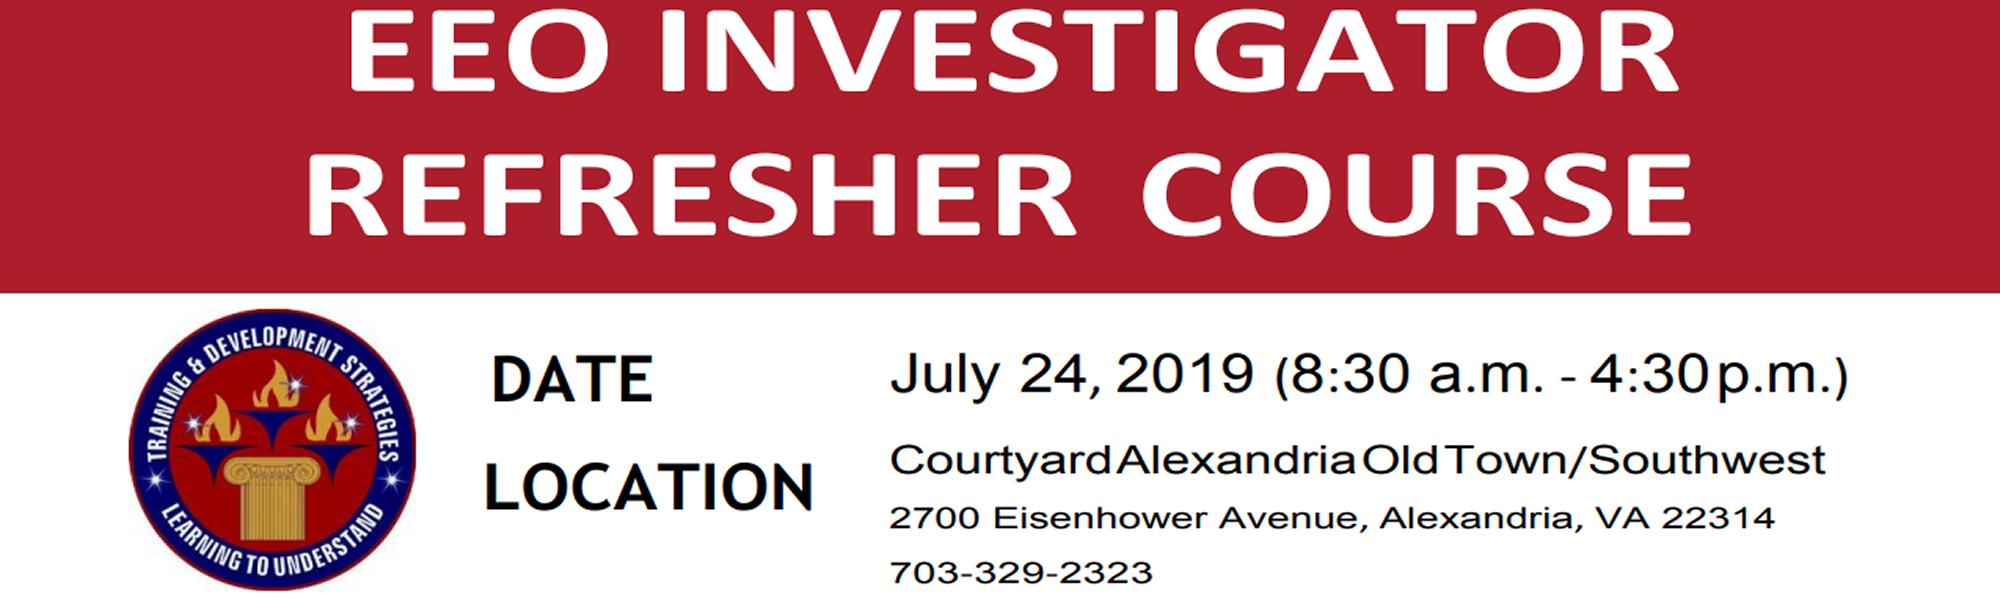 EEO Investigator Refresher Course